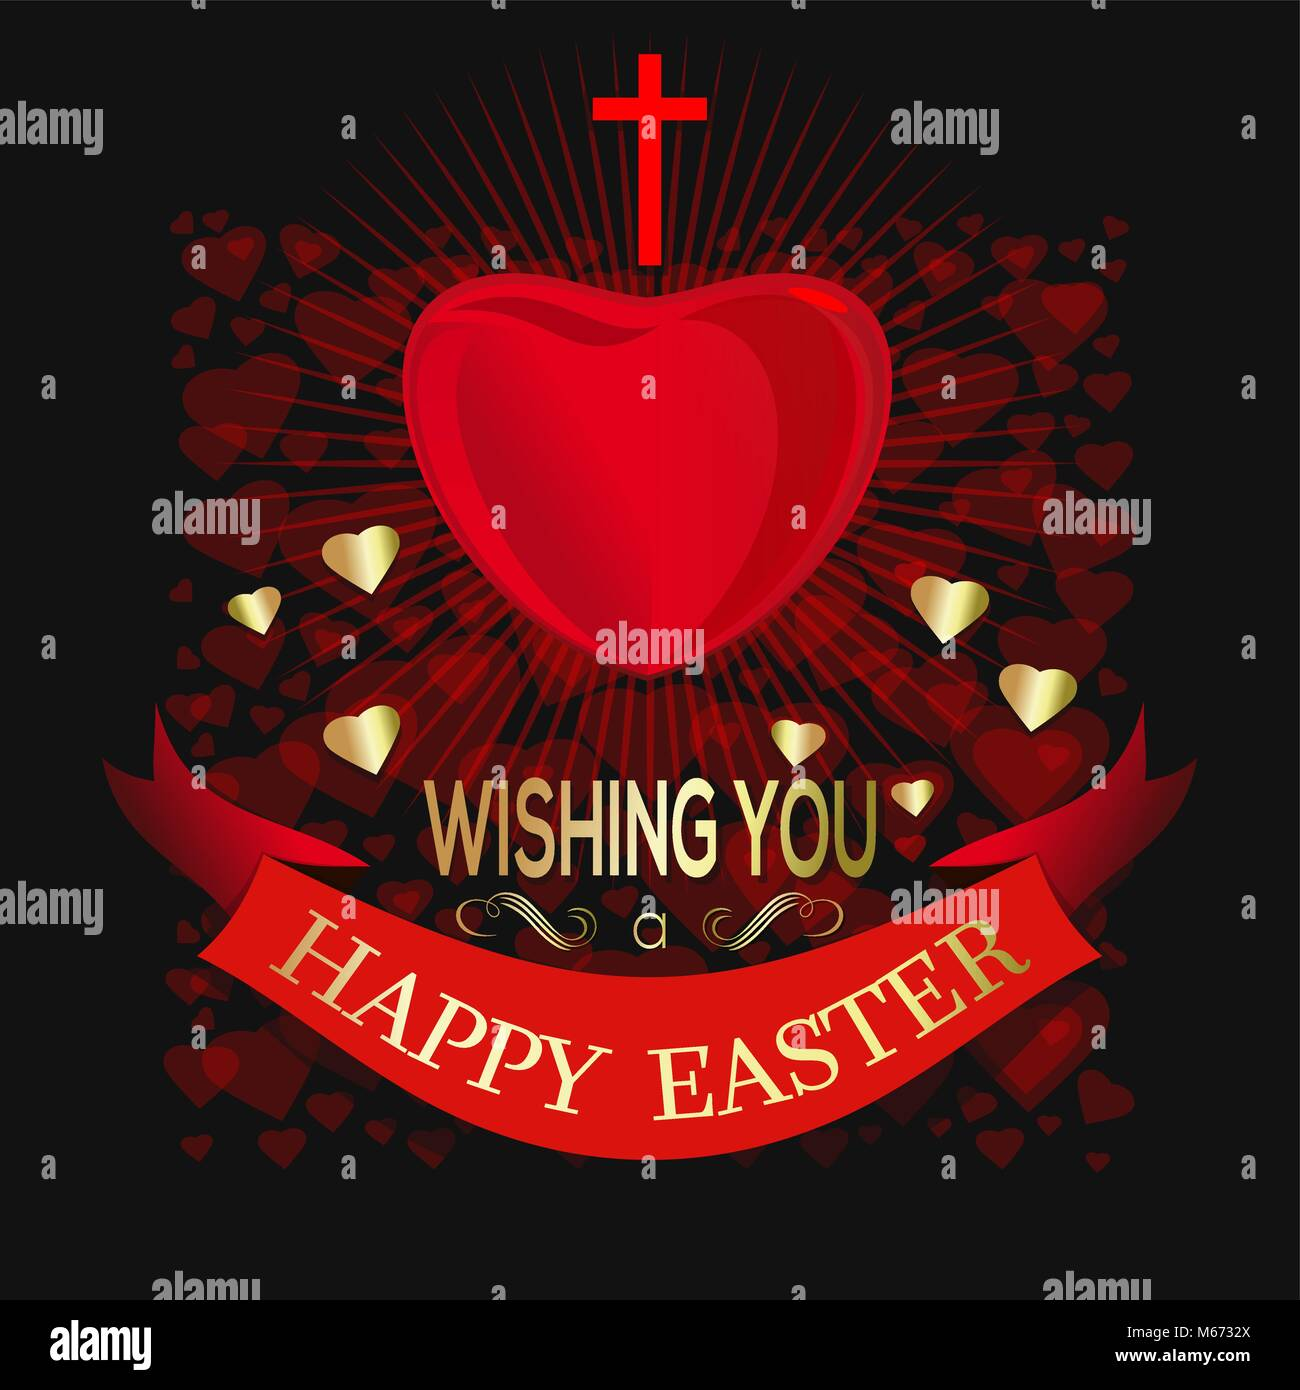 Happy Easter Big Red Heart Cross And Easter Greetings On The Dark